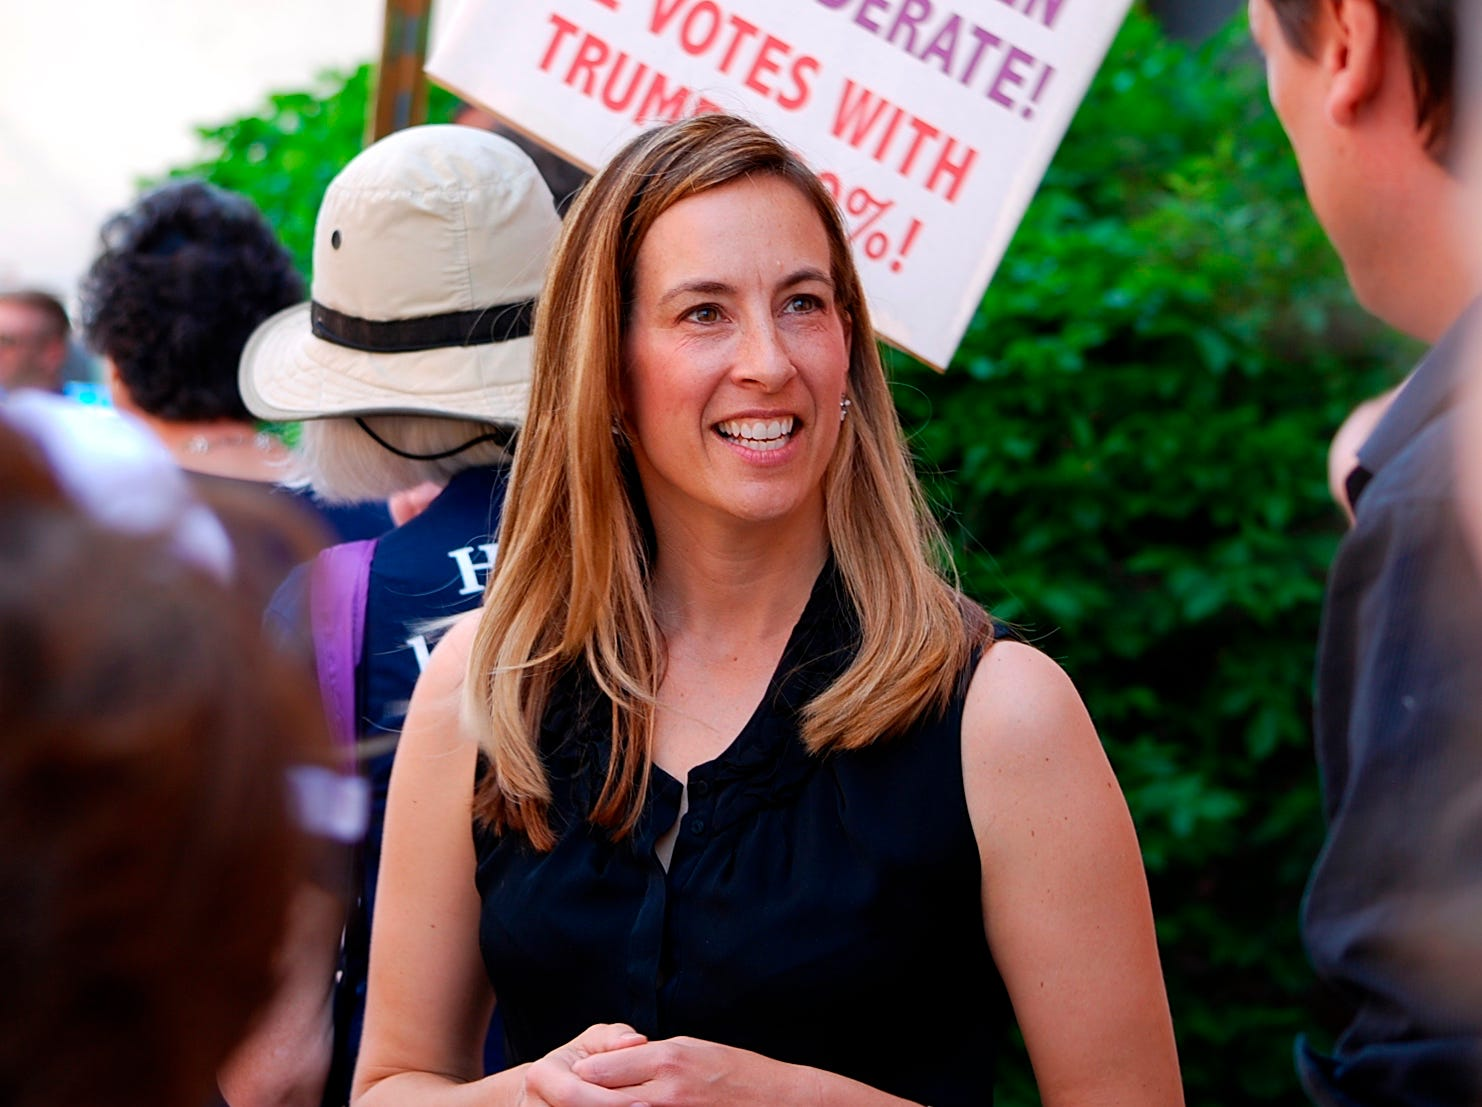 FILE- In this May 19, 2017, file photo, Mikie Sherrill joins protesters with NJ 11th for Change outside of U.S. Rep. Rodney Frelinghuysen's Morristown office.